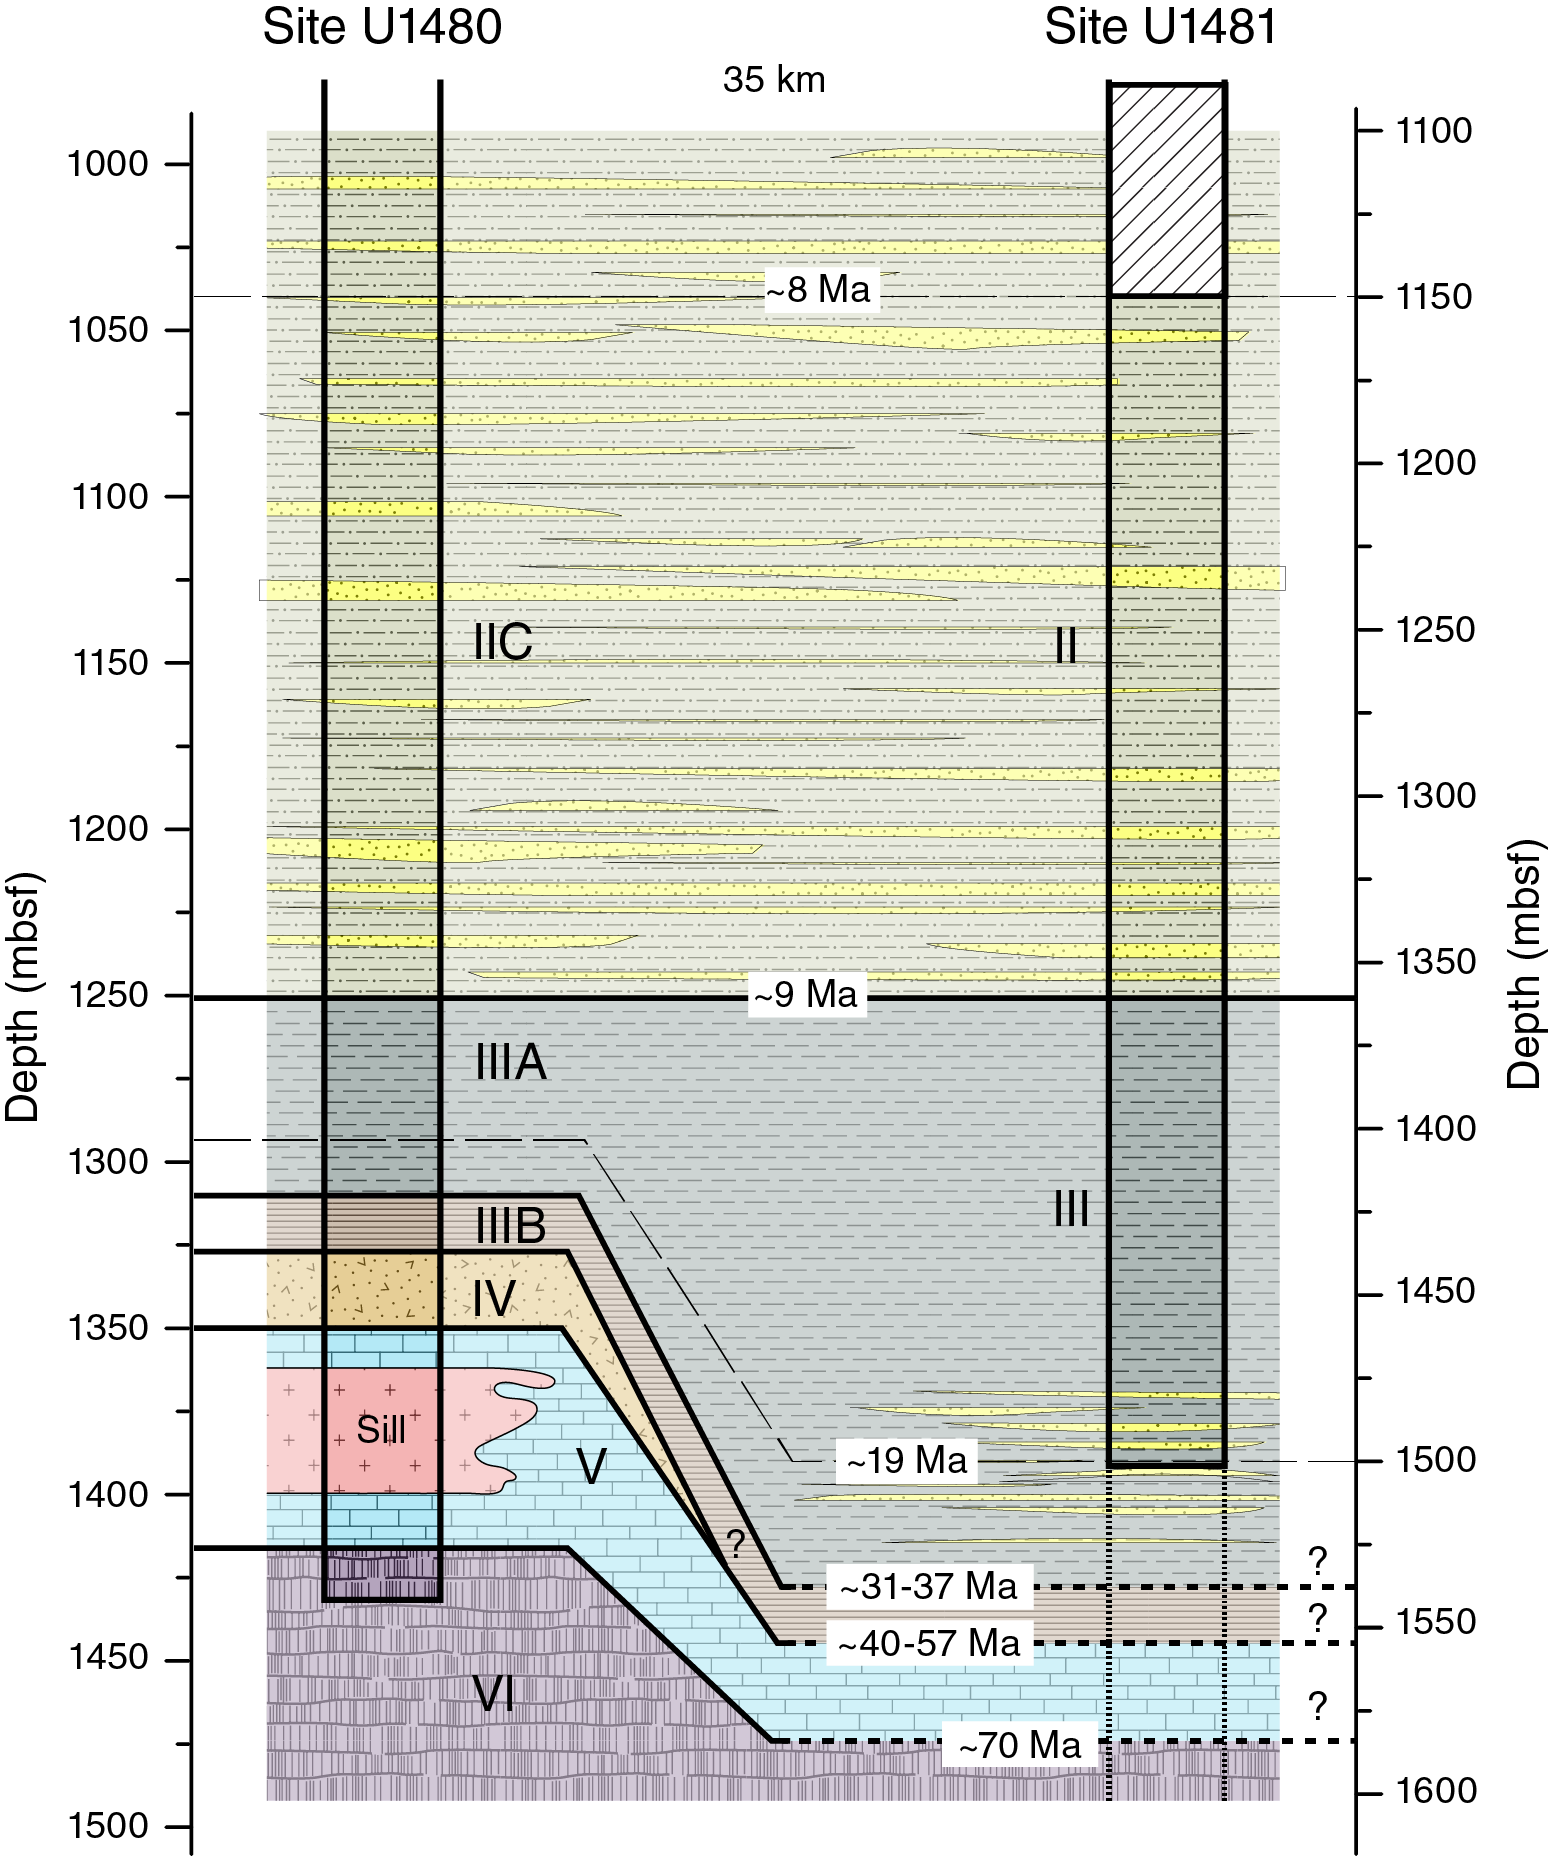 Iodp Publications Volume 362 Expedition Reports Site U1481 Ocean Wave Motion Diagram Free Download Wiring Schematic Comparative Lithostratigraphy For Sites U1480 And